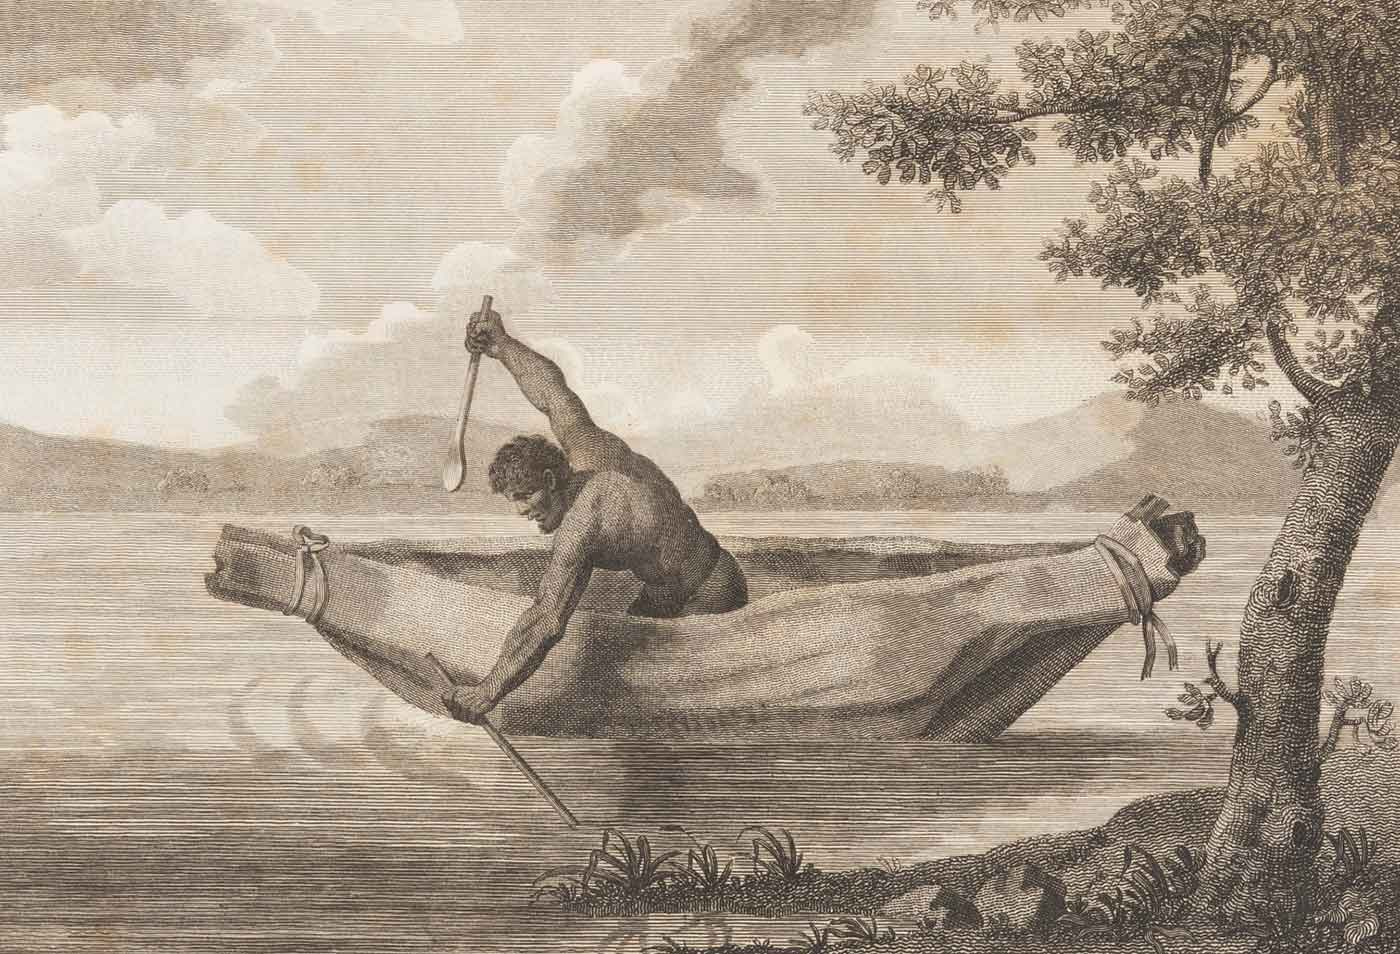 Engraving featuring a man in a canoe, leaning over the side with a spear poised above his right arm. - click to view larger image